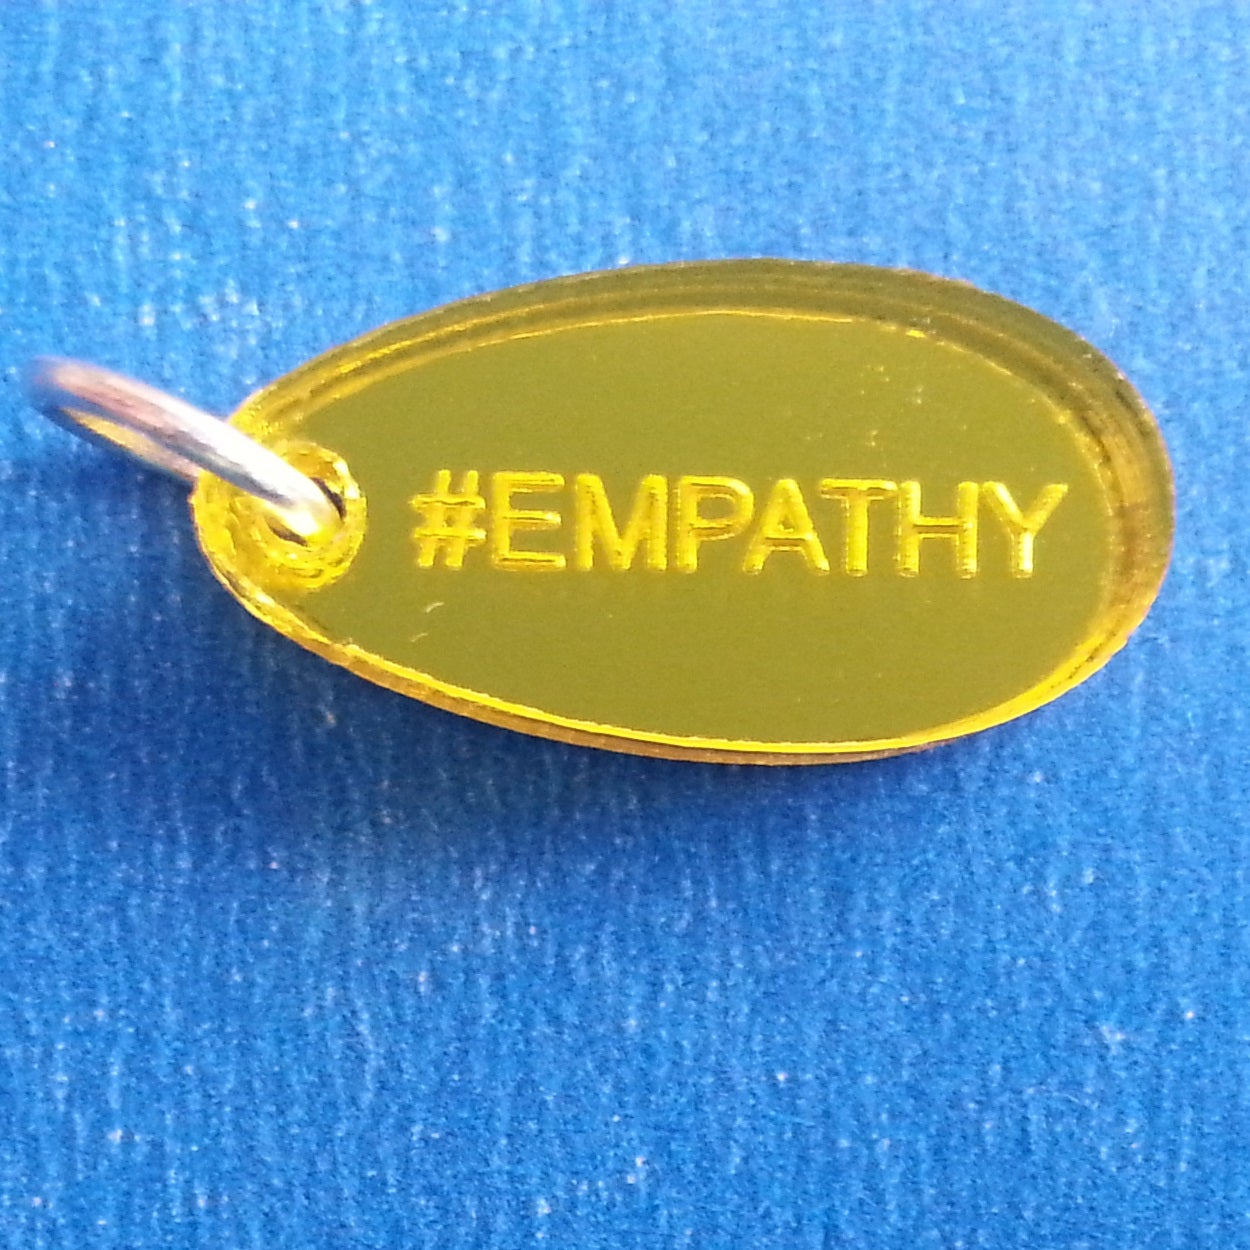 Image of #Empathy